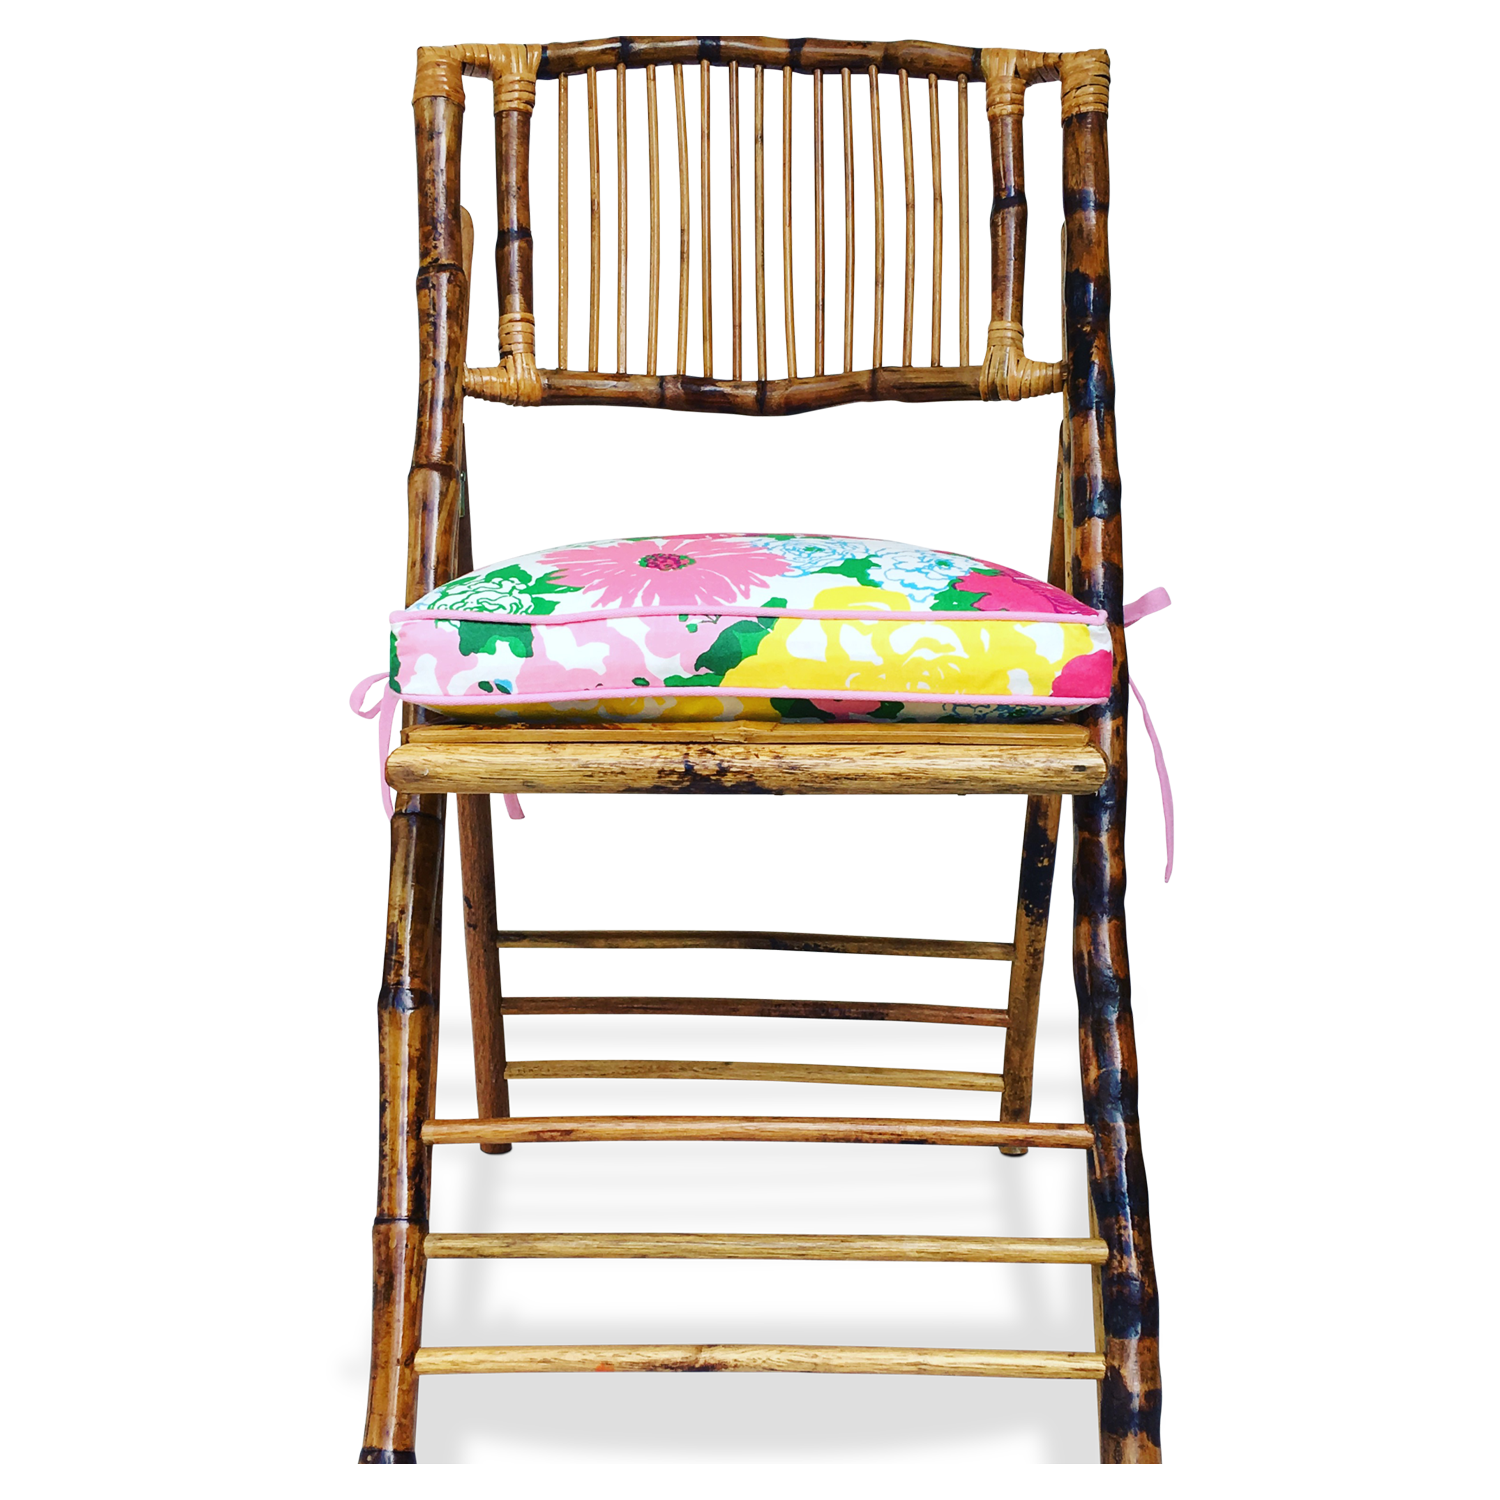 Lilly Cushion on Bamboo Chair Dixie & Grace